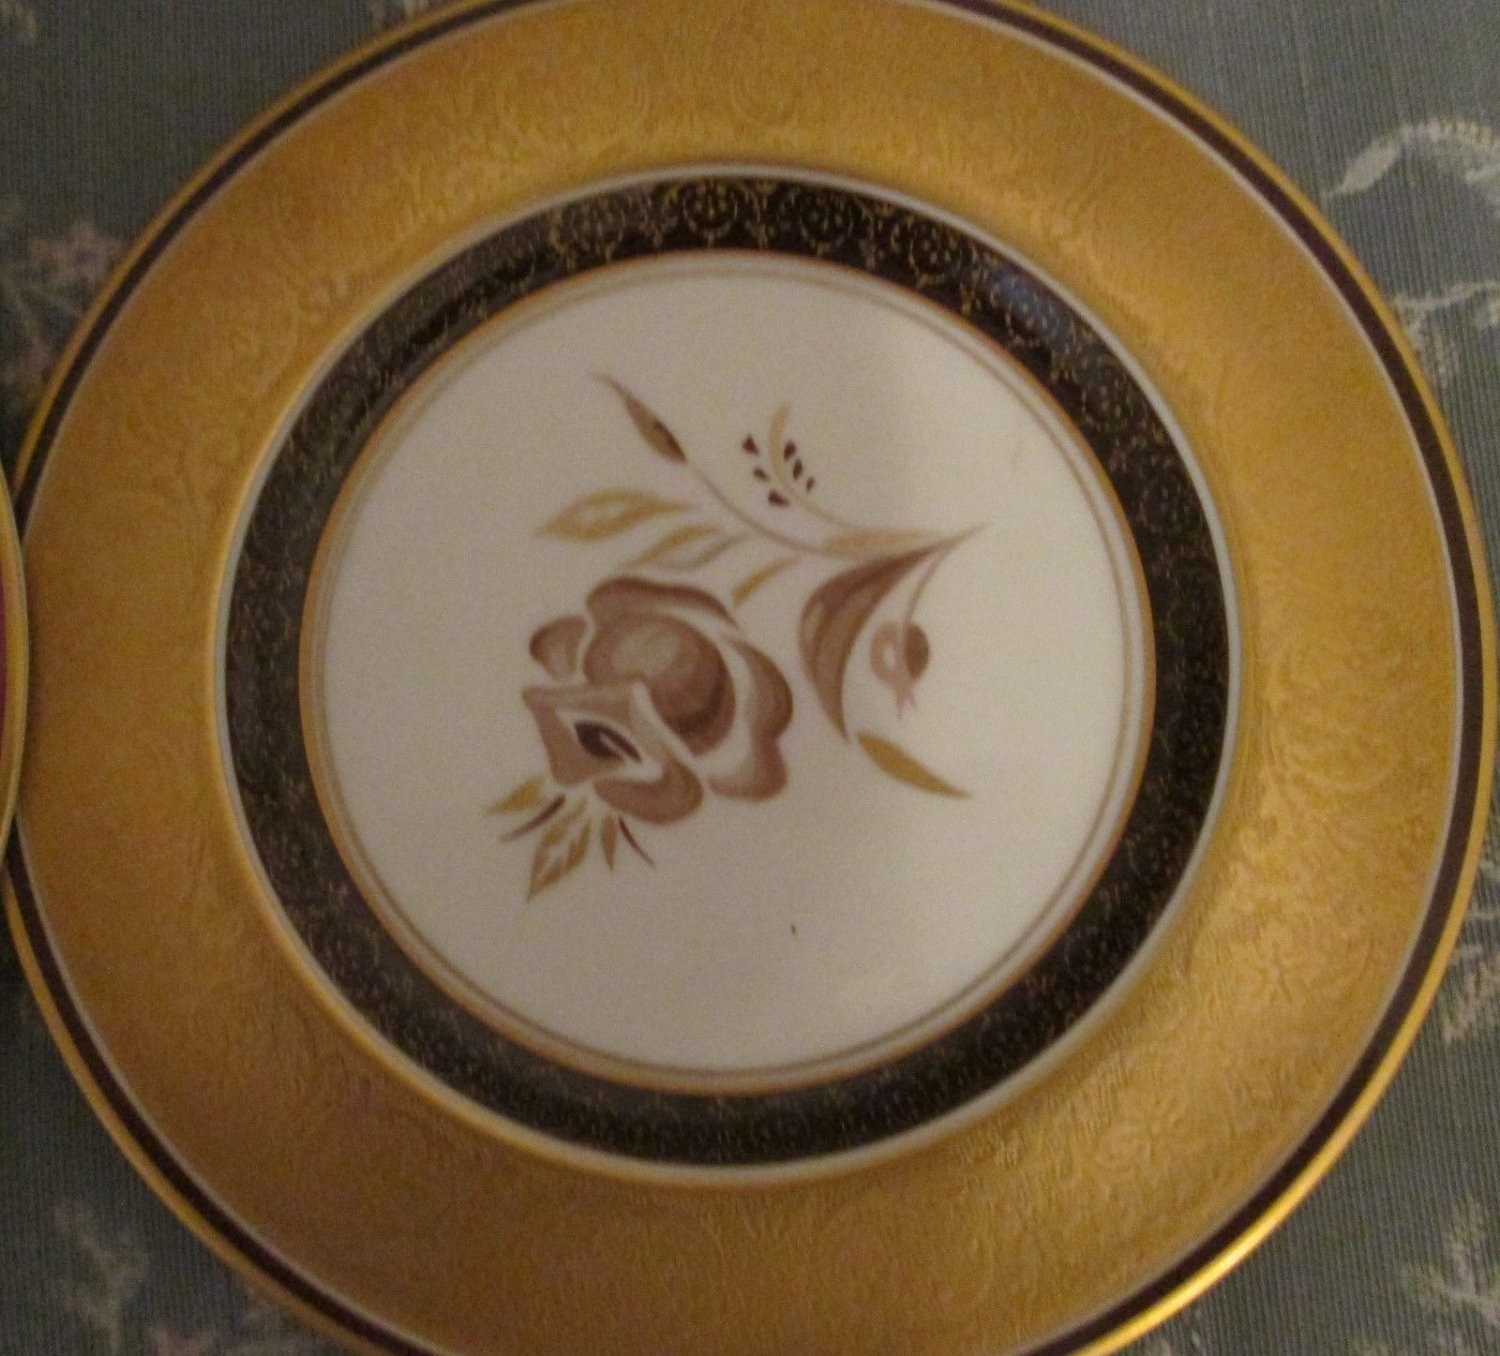 COLLECTIBLE PICKARD STUDIO CHINA GOLD HAND PAINTED DECORATED SIGNED VENETIA